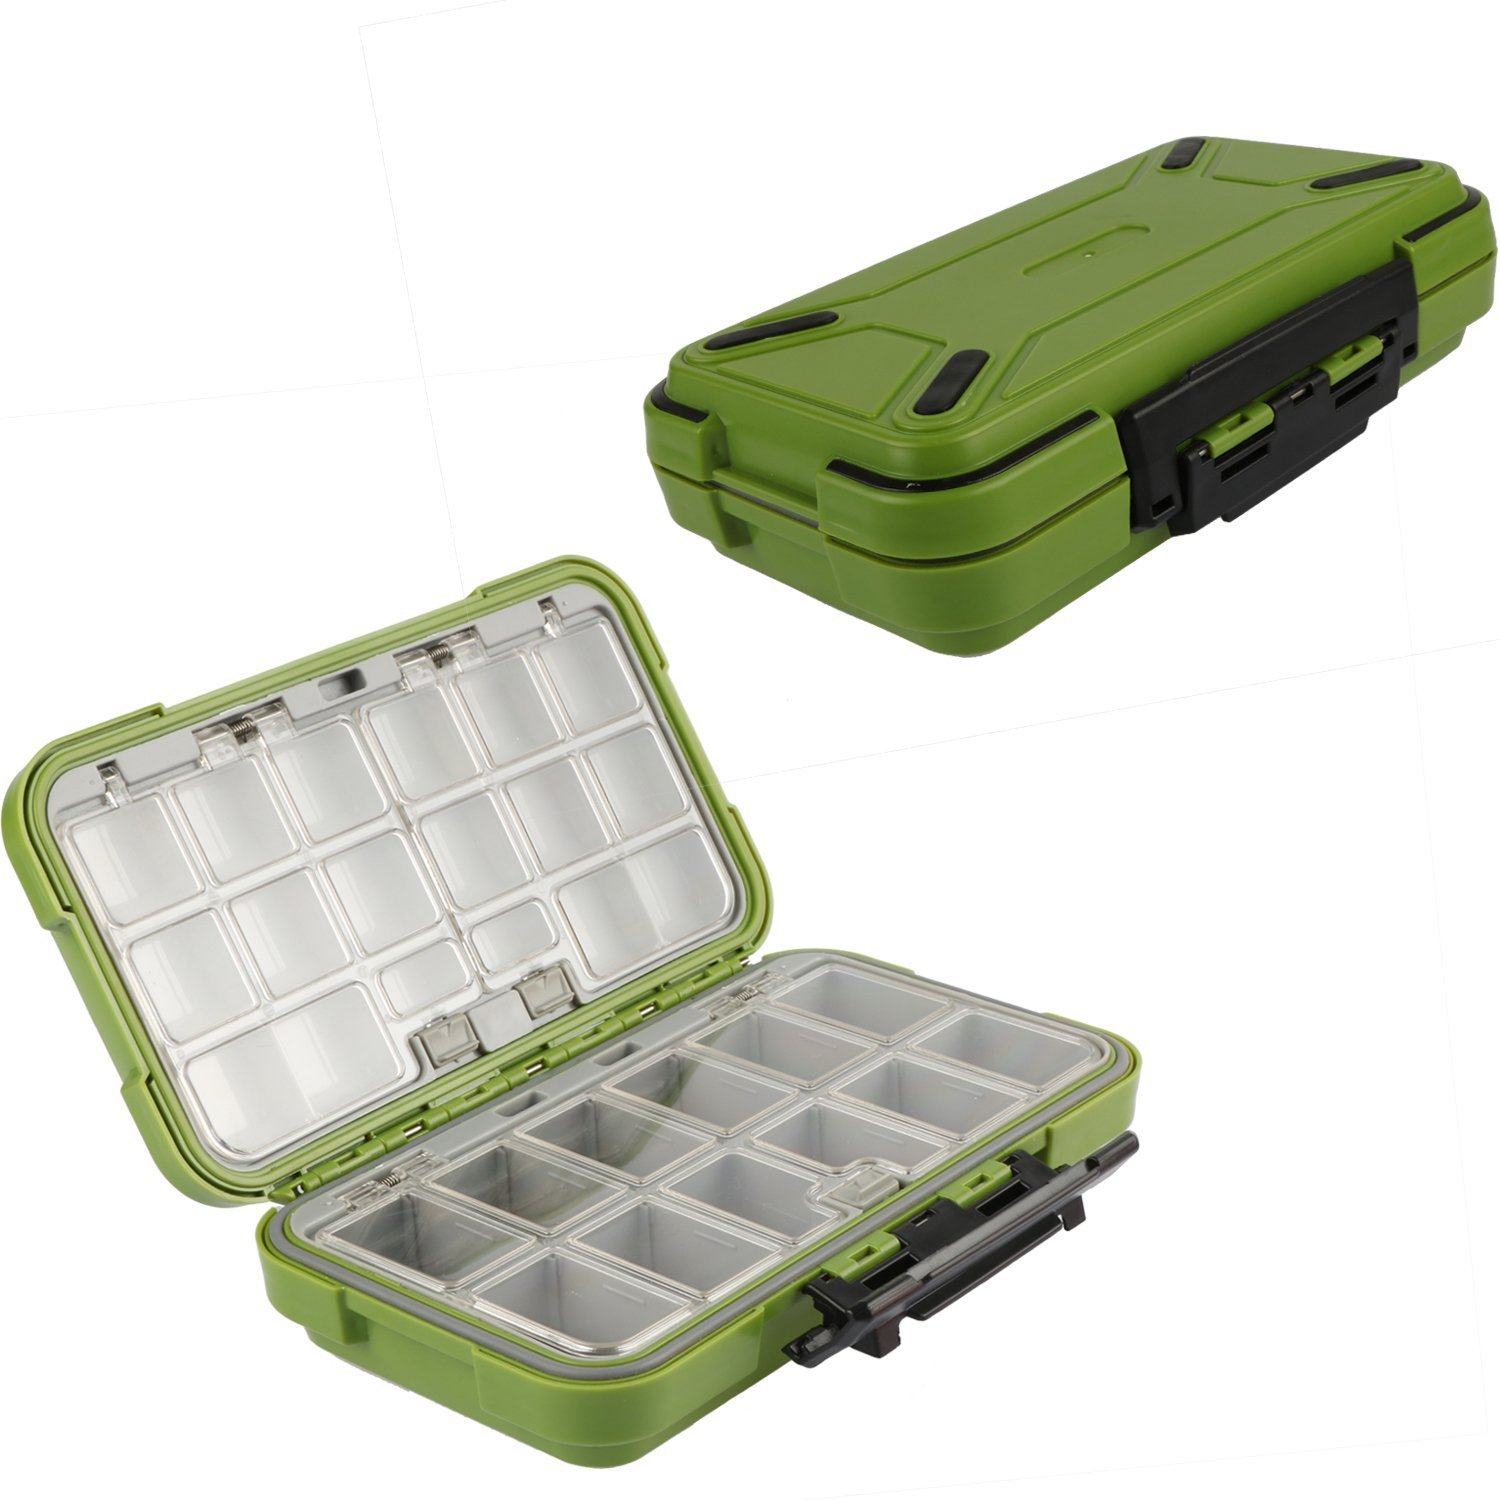 Goture Fishing-Lure-Boxes-Bait Tackle-Plastic-Storage, Small-Lure-Case, Mini-Lure-Box for Vest, Fishing-Accessories Large Boxes Storage Containers (Large/Green) by Goture